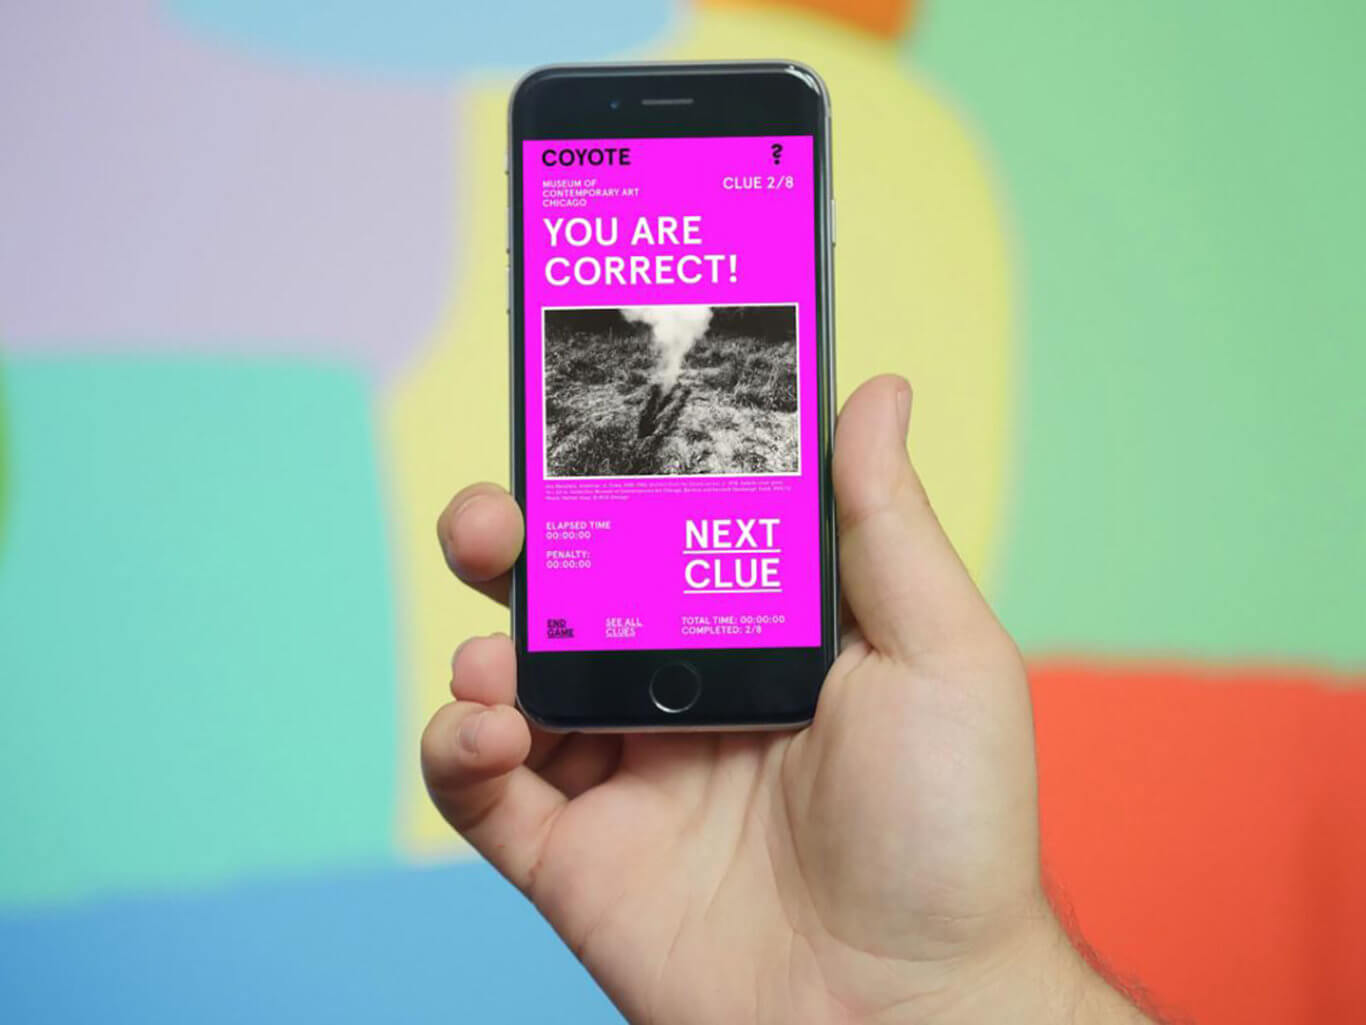 """A light-skinned hand holds up a smartphone with the screen facing you. The screen reads, """"YOU ARE CORRECT!"""" at the top and """"NEXT CLUE"""" in the bottom right-hand corner."""